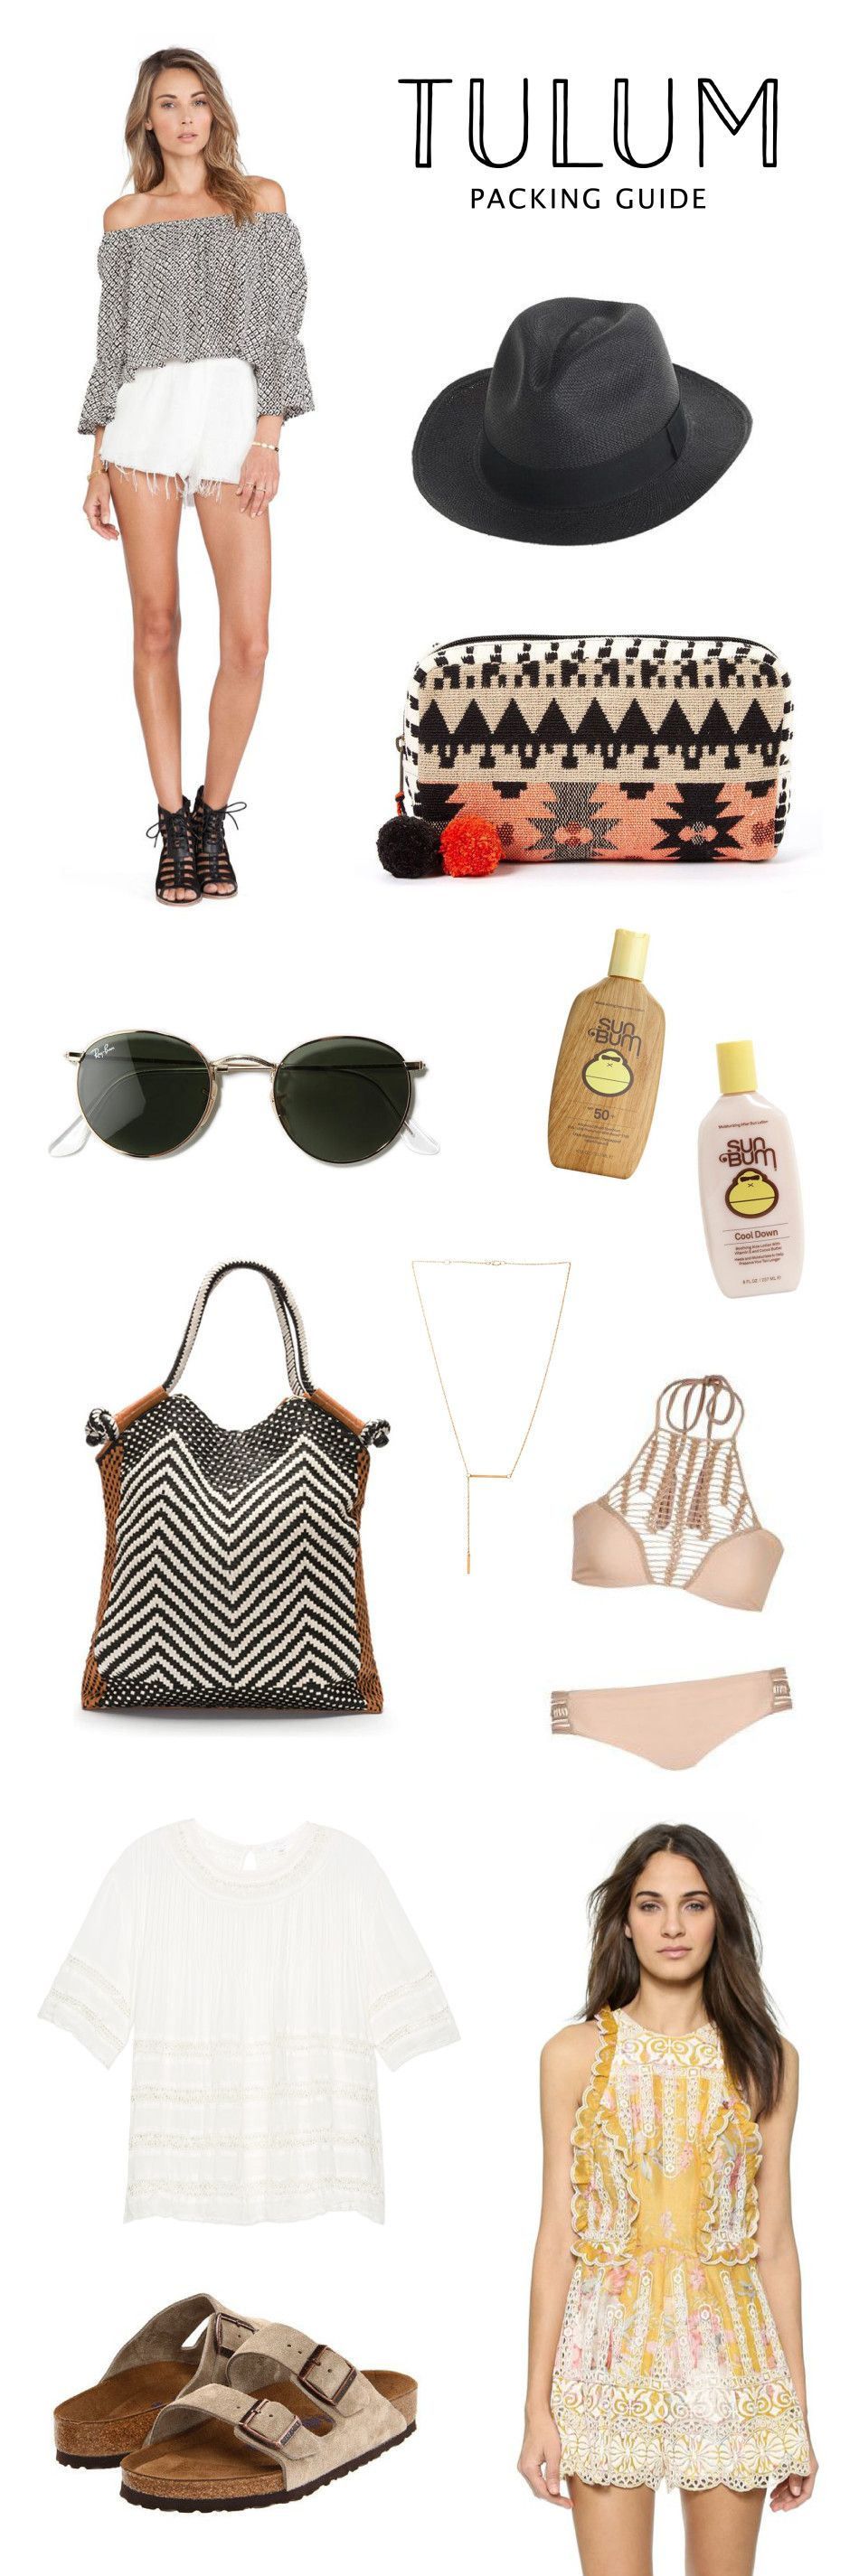 HANNAH SHELBY: Tulum Packing Guide